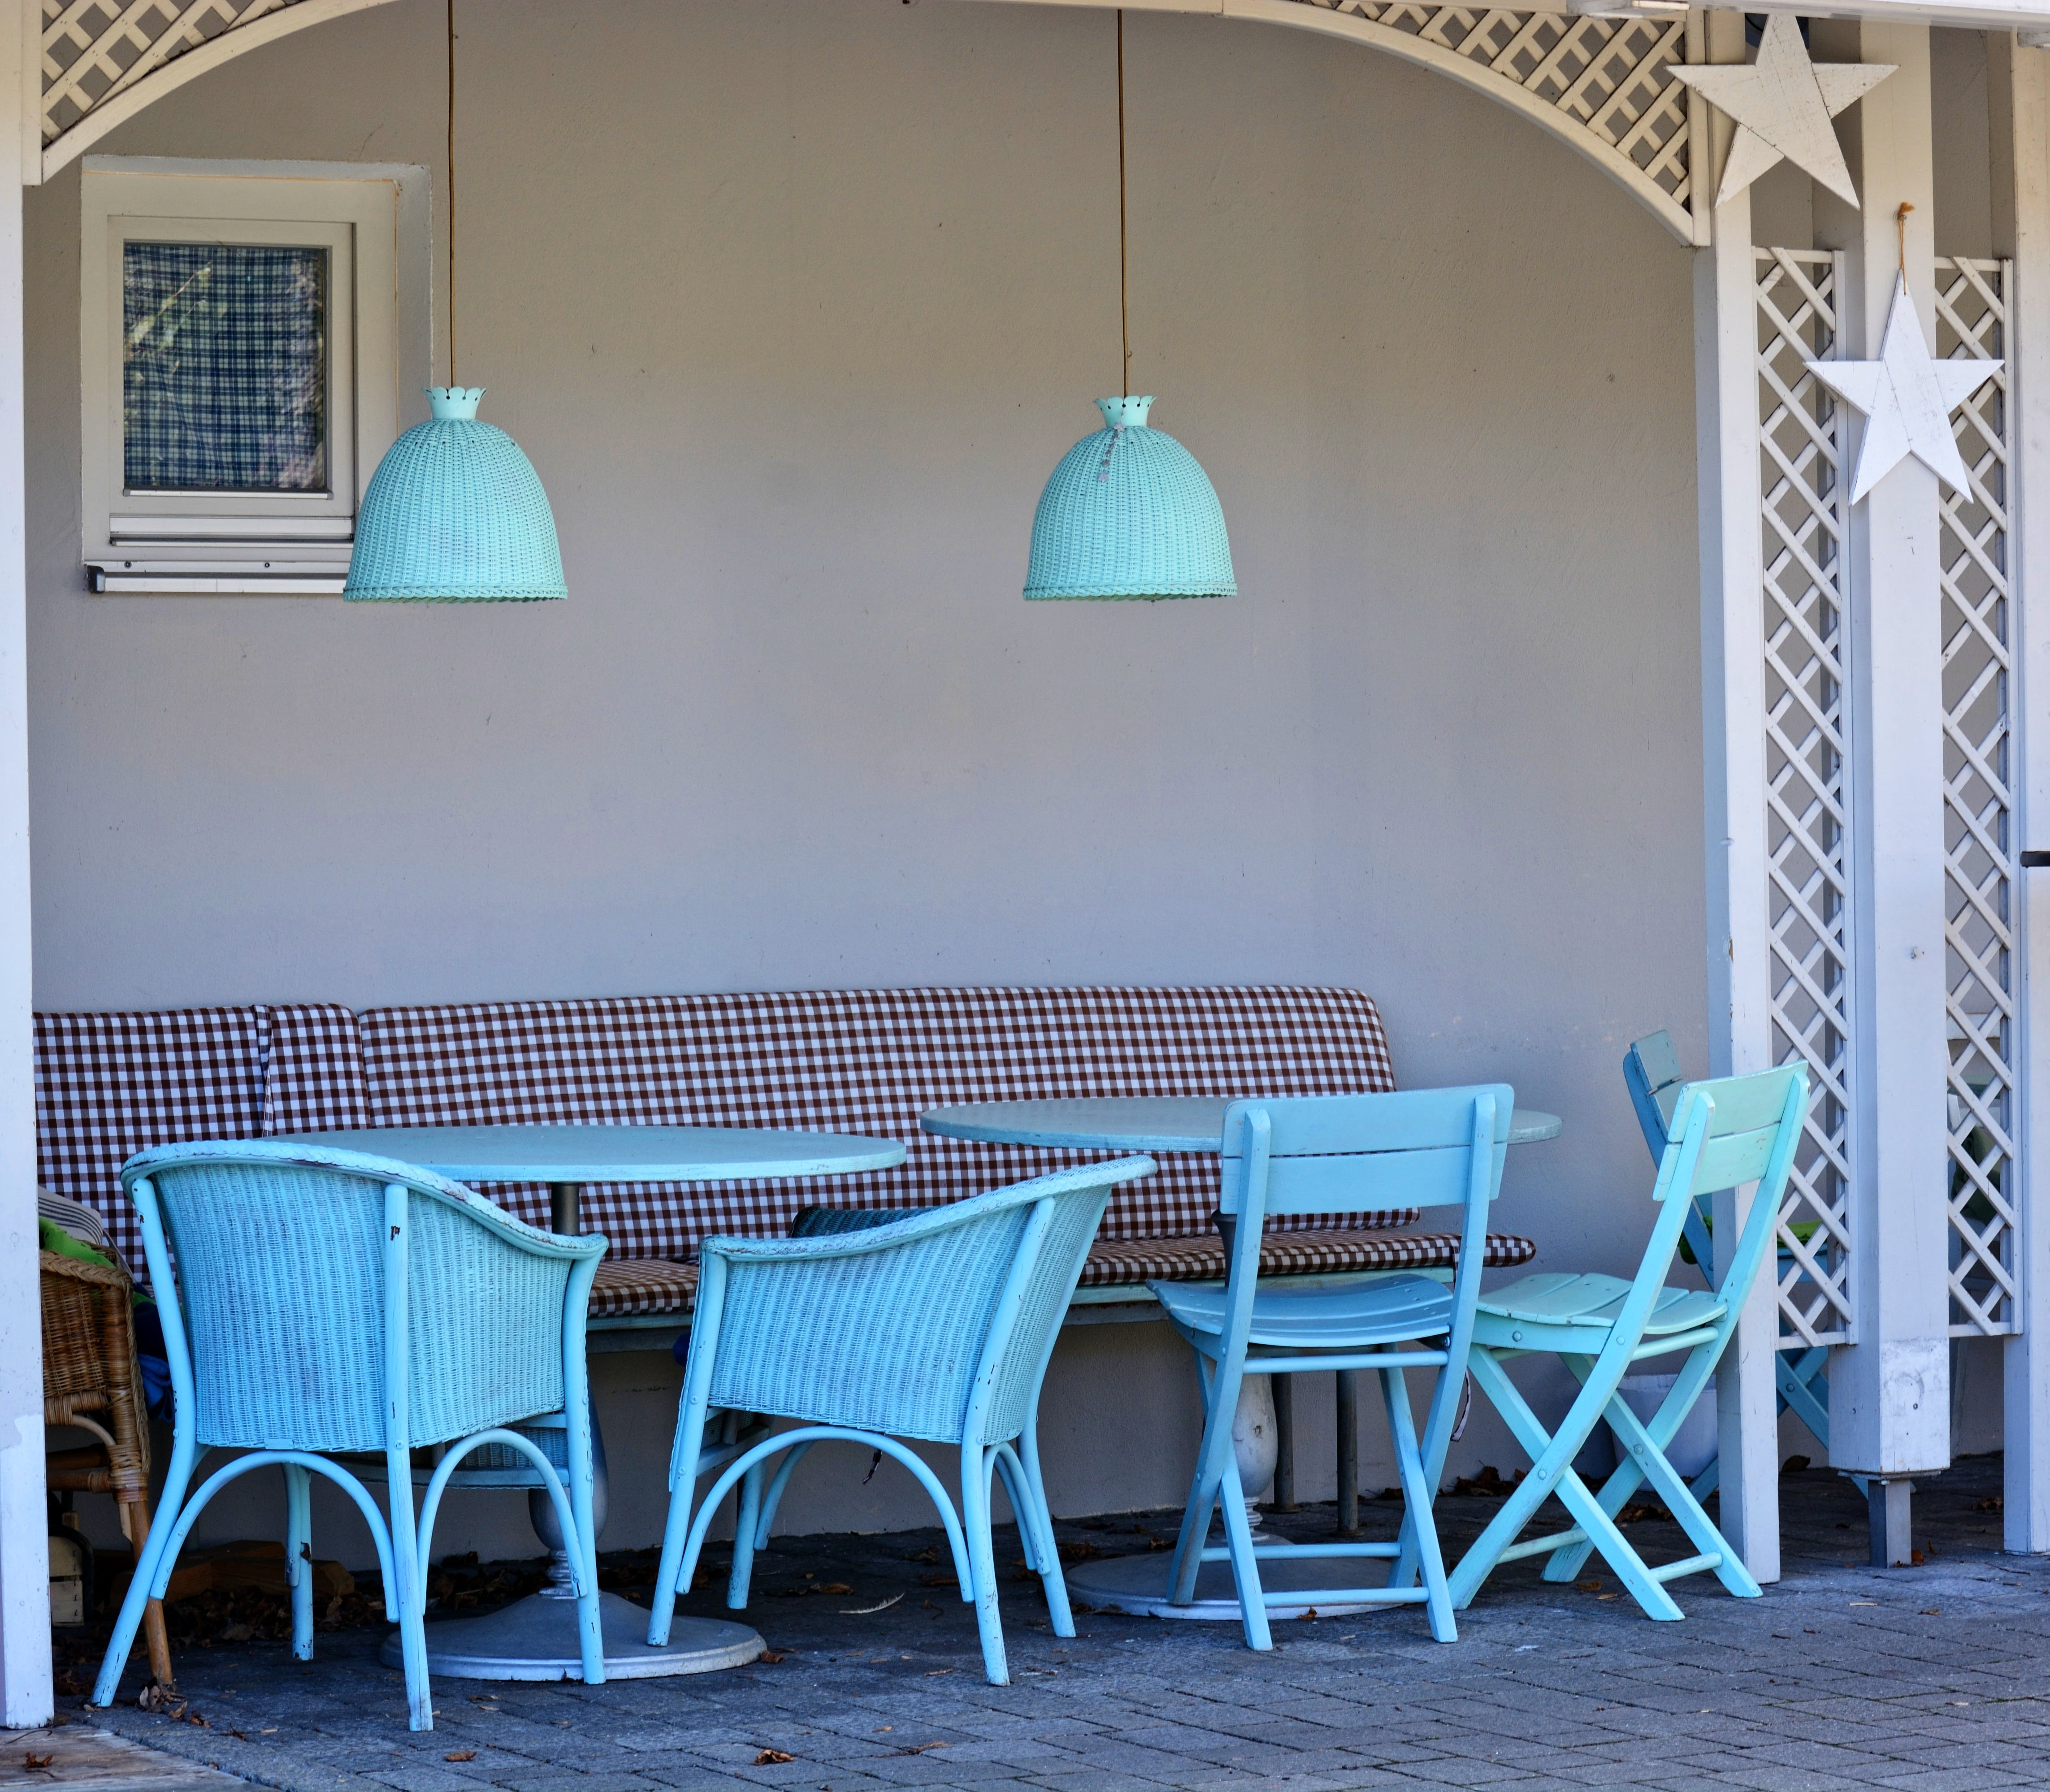 Teal Wooden Table and Chairs